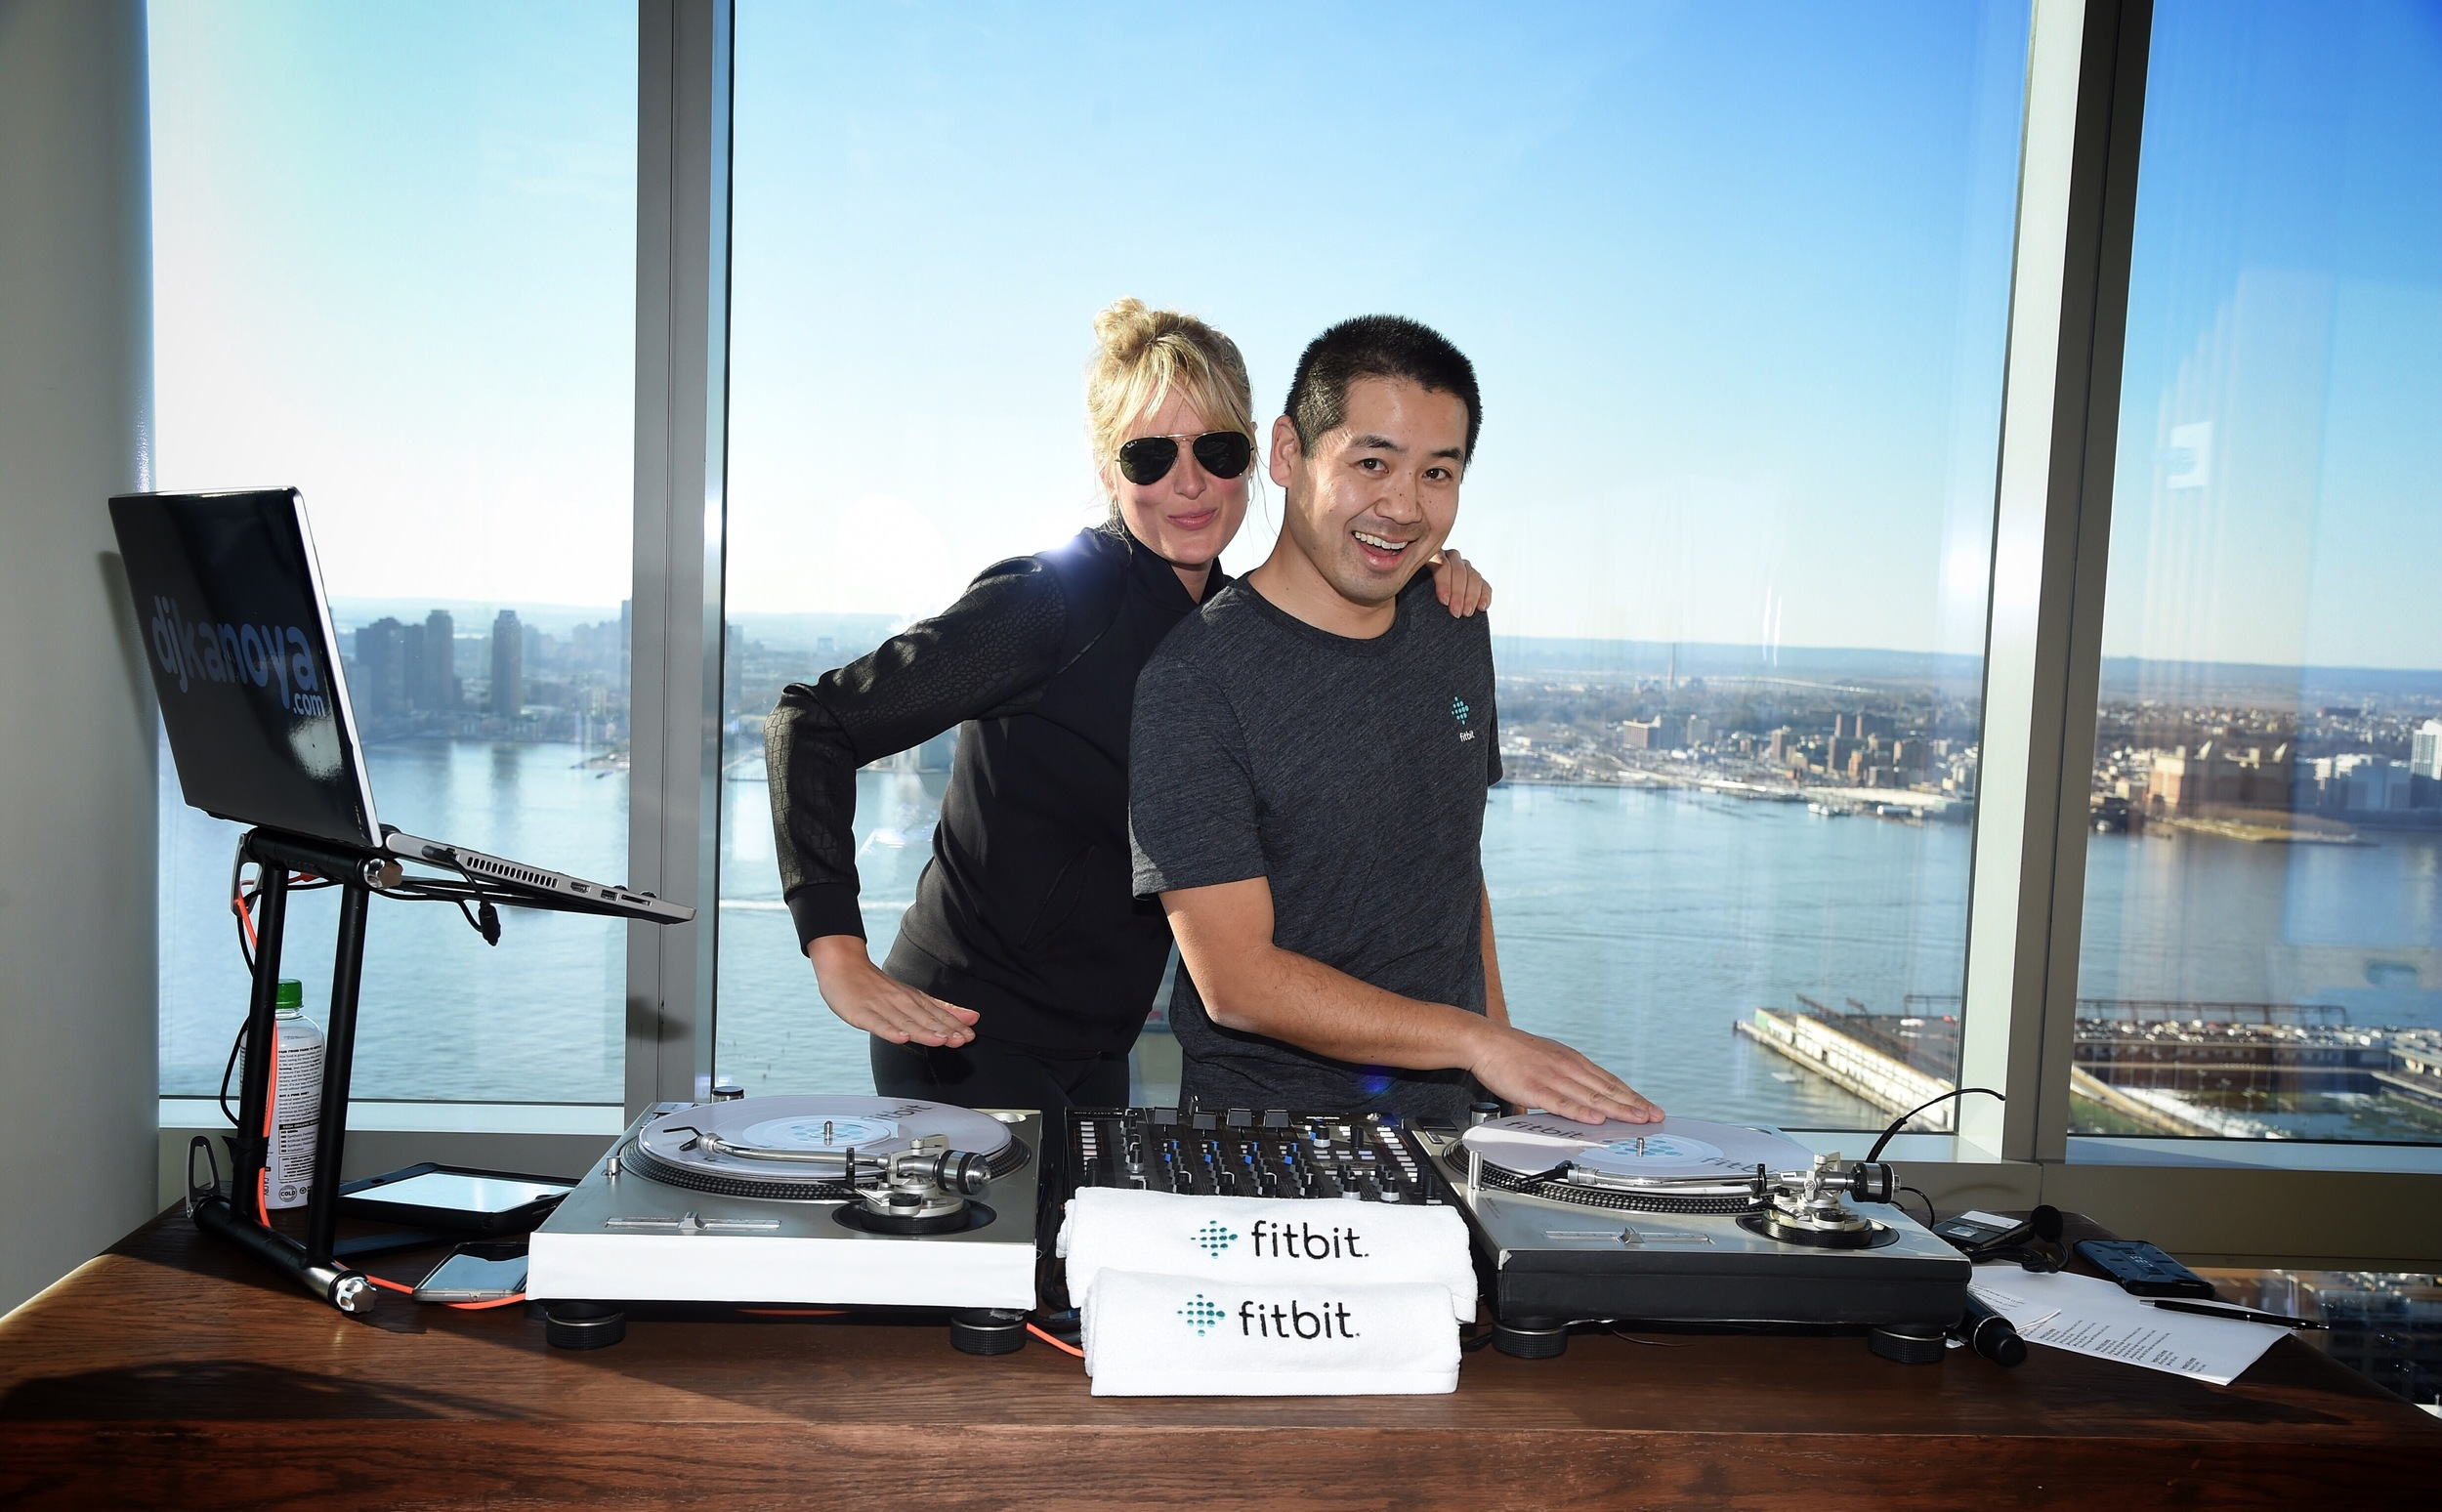 Celebrity stylist Anita Patrickson took a shot at DJing during the launch event for Fitbit Alta.